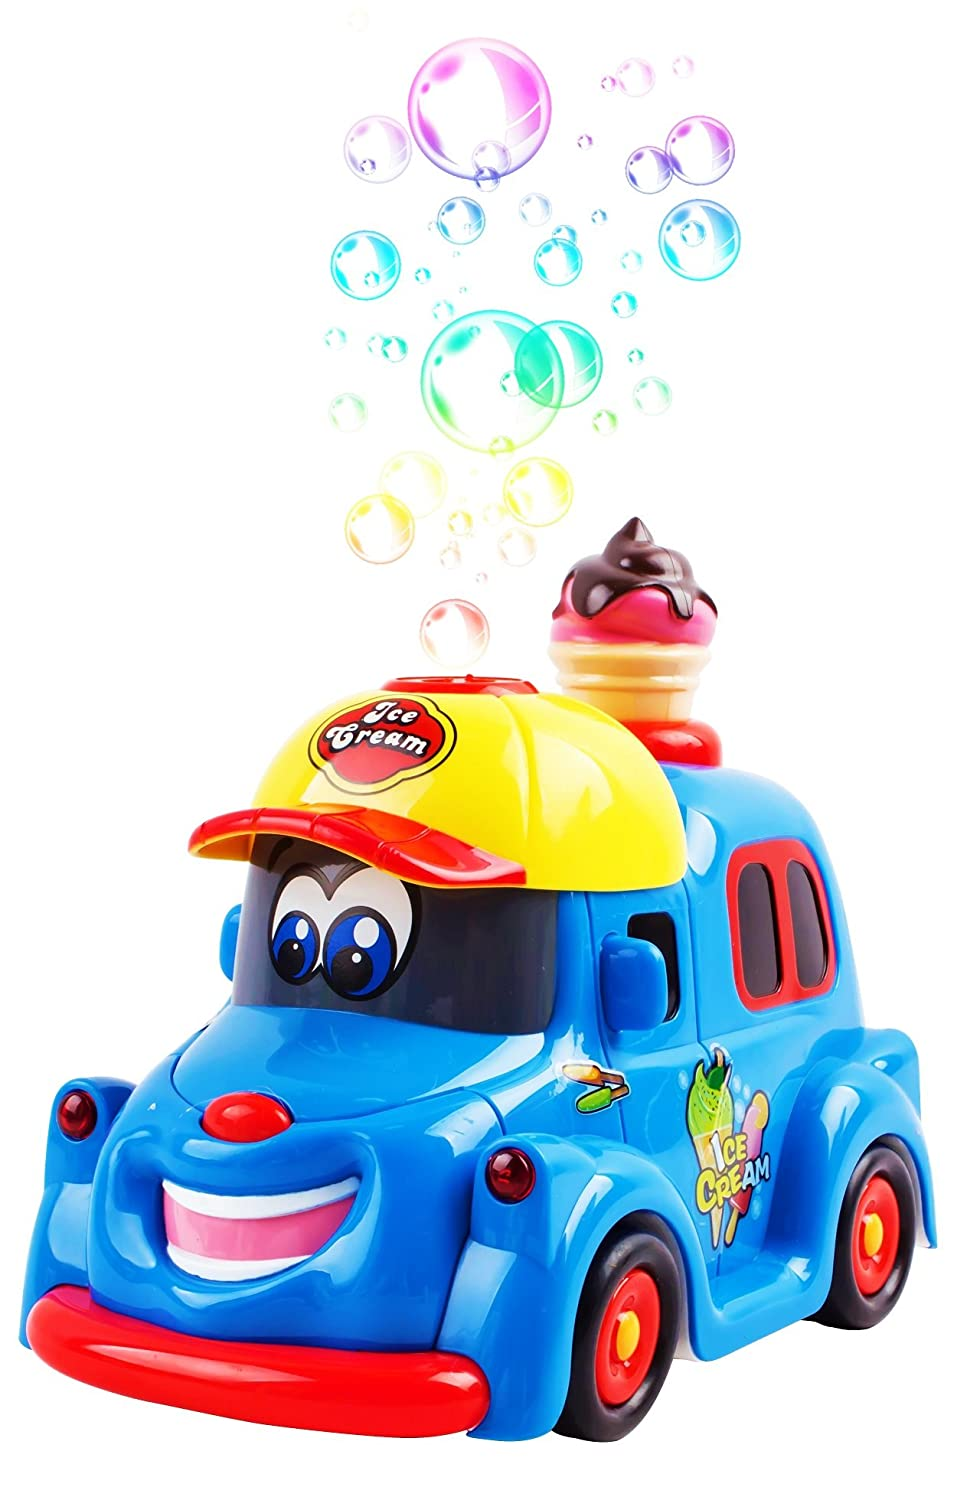 Bubble Ice Cream Truck Toy Battery Operated Toy Ice Cream Truck Car w/ Lights & Sound Music